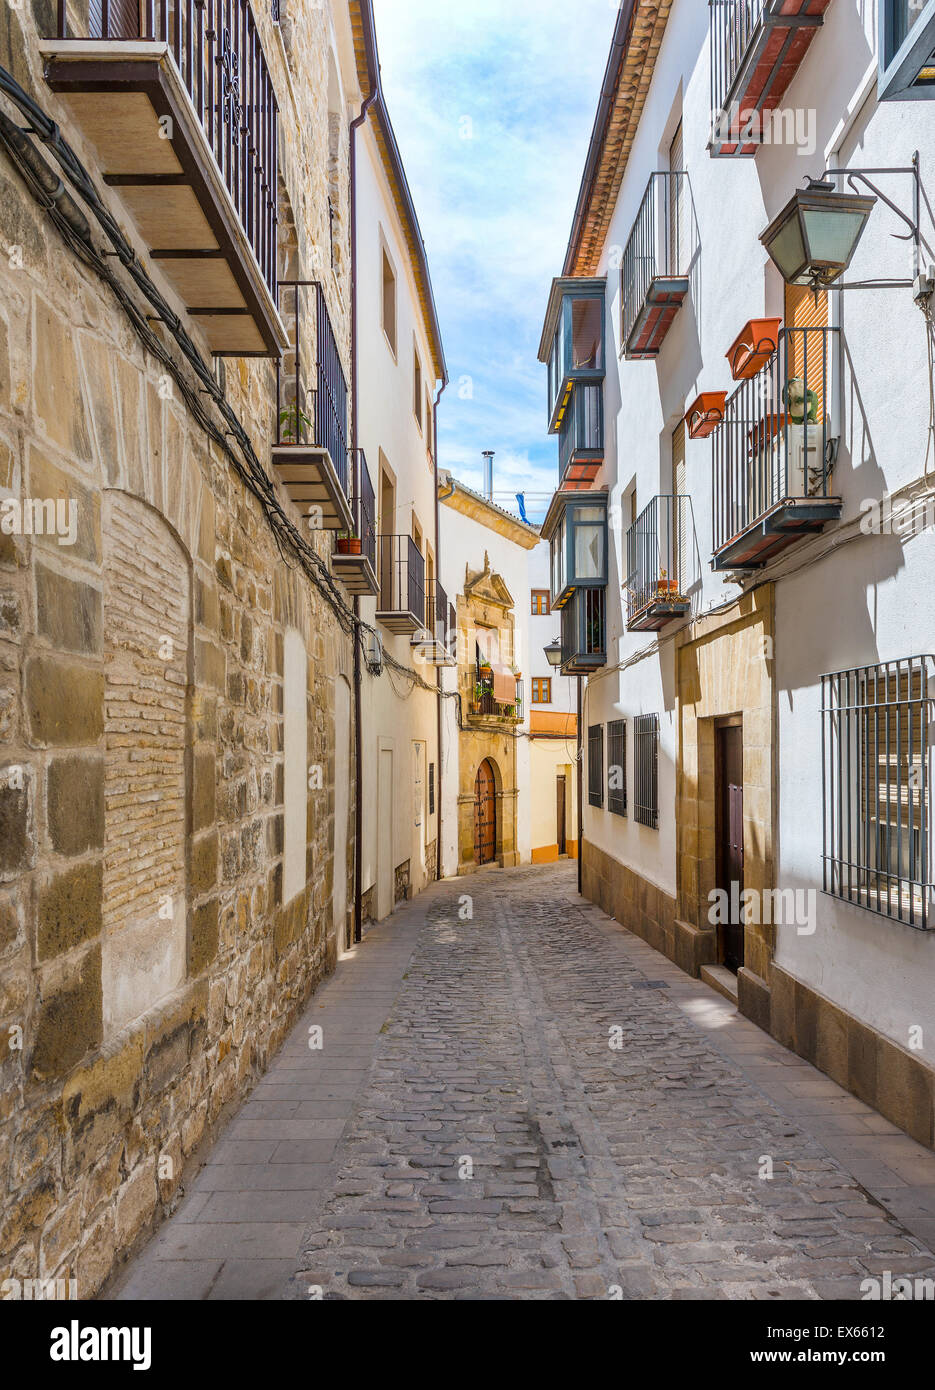 Side Street in Ubeda, Jaen Province, Andalusia, Spain - Stock Image